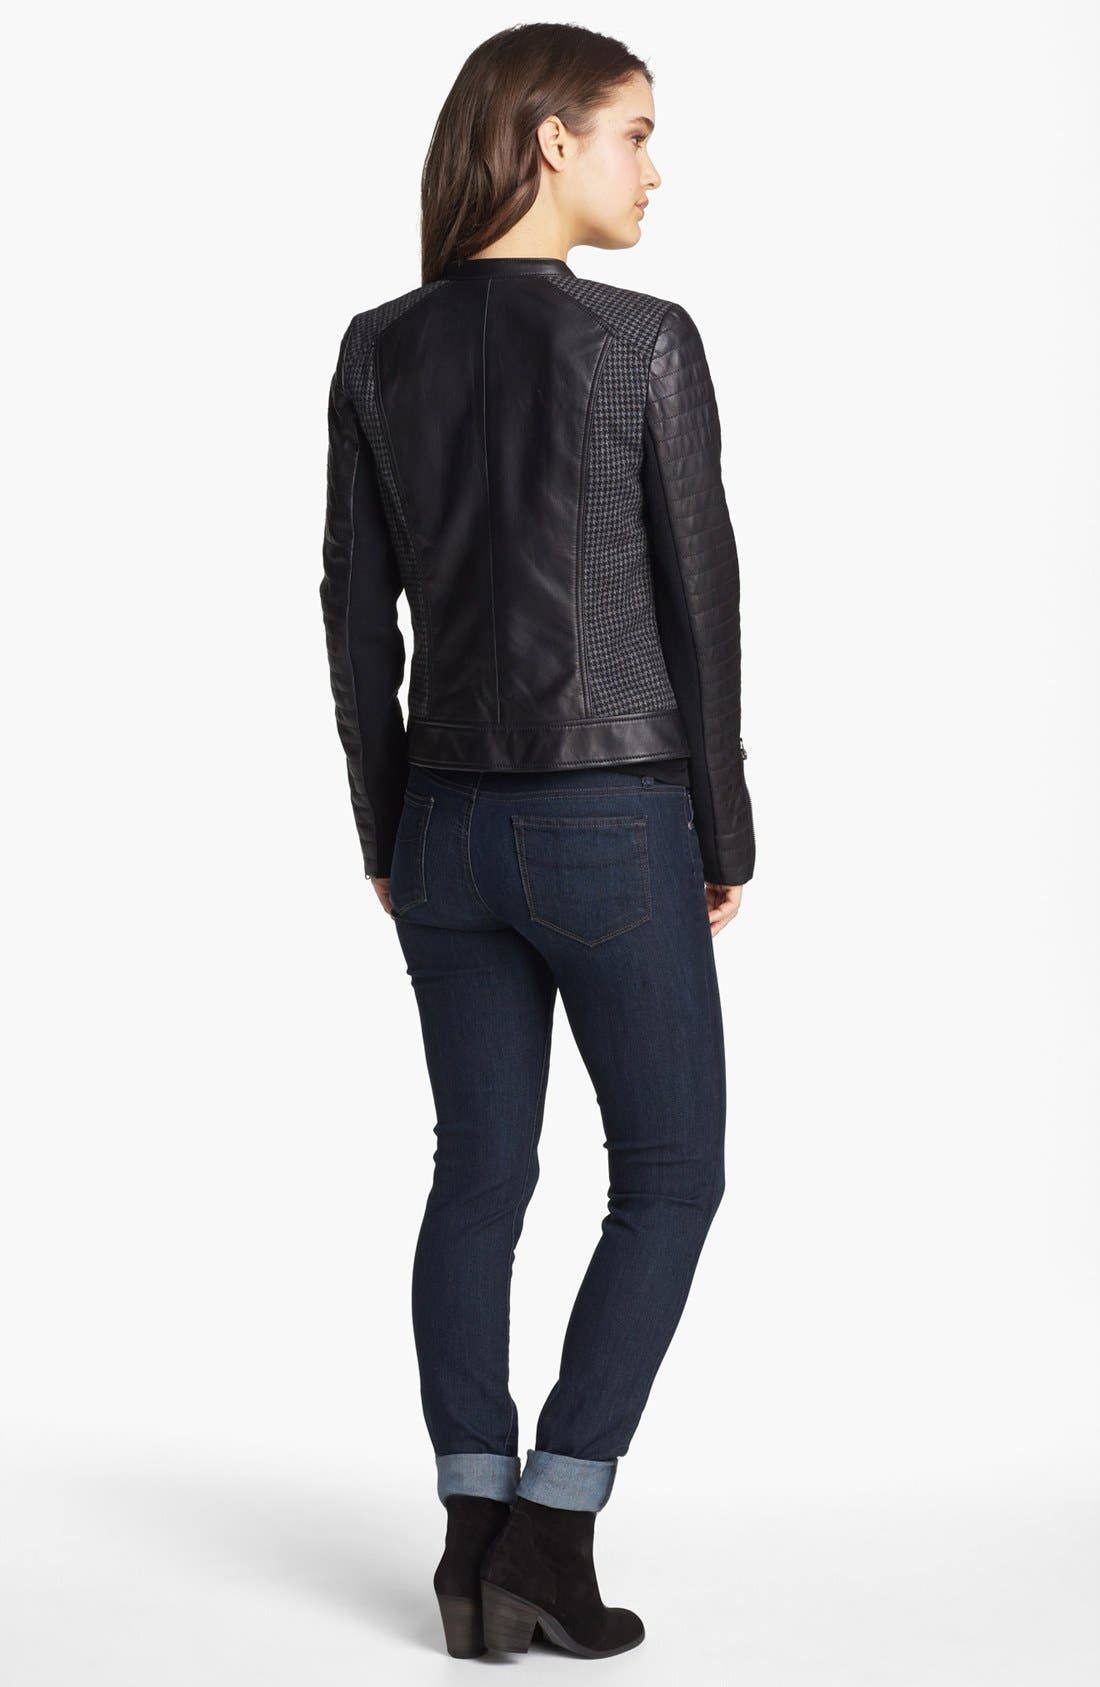 Main Image - Trouvé Jacket, Halogen® Shirt, Free People Tee & MOTHER Jeans